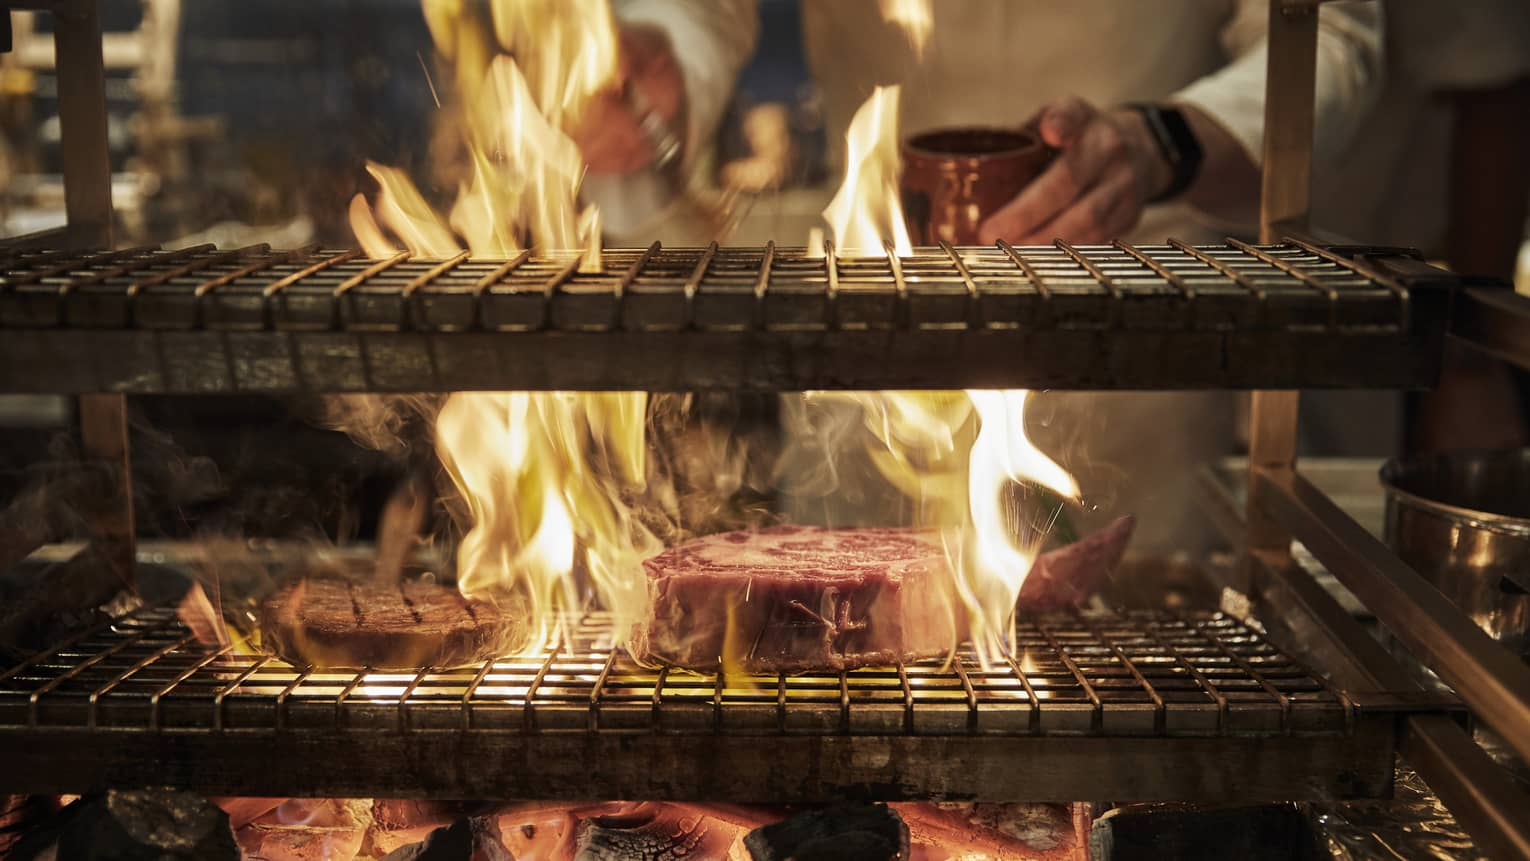 A Zuma chef grills on an open flame